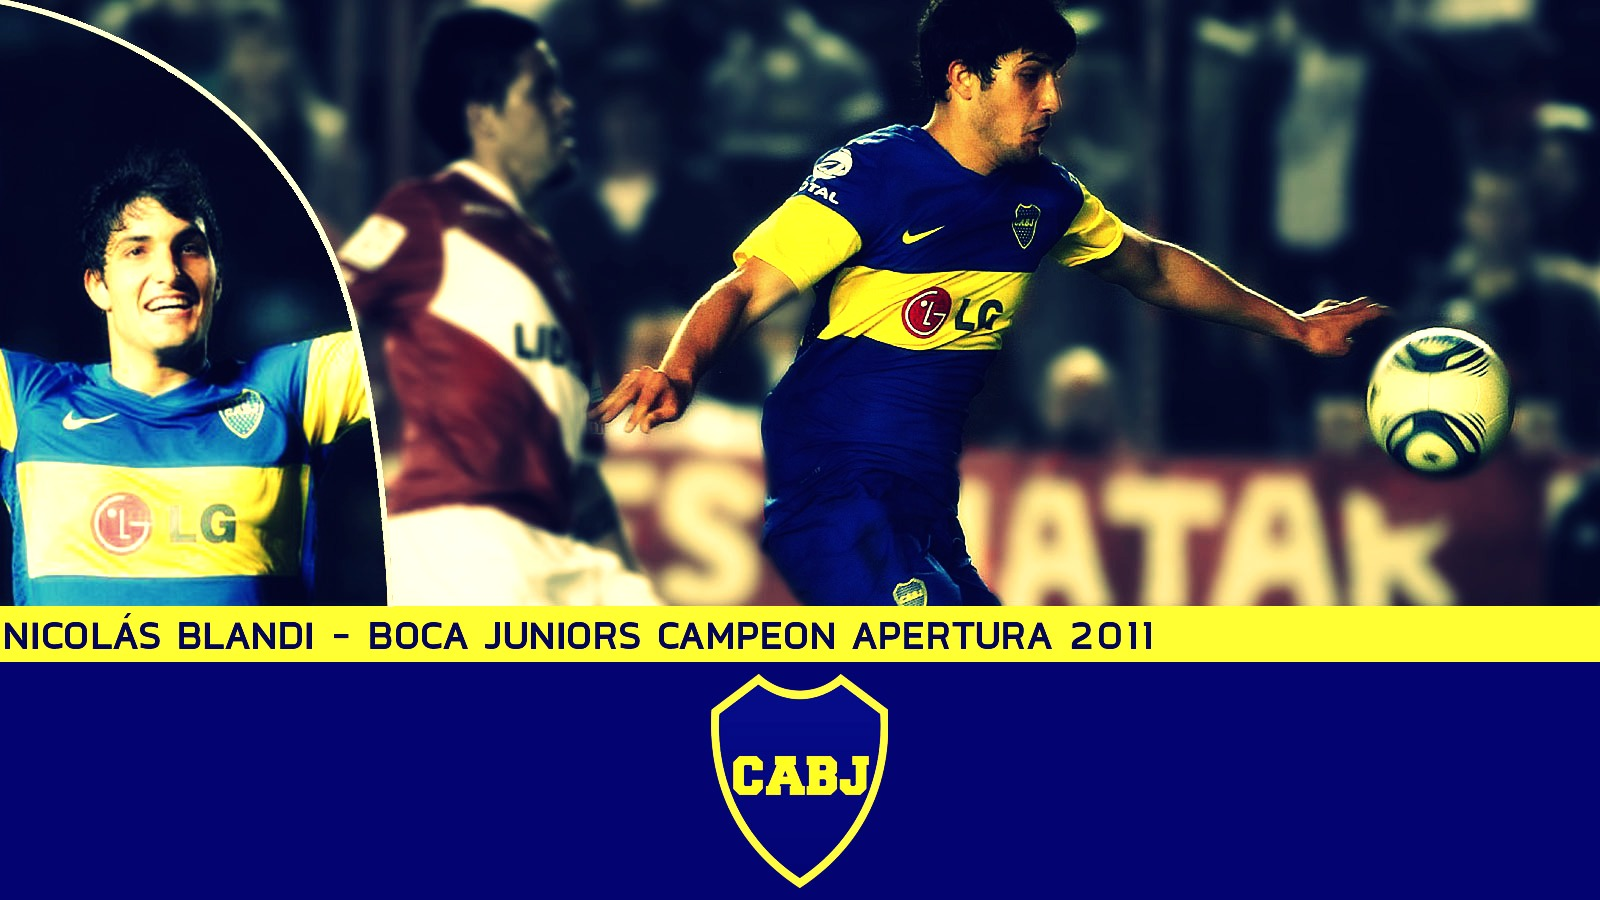 boca juniors essay Learn all the details about club atlético boca juniors, founded in 1905 check its track record, stats, upcoming matches, and news on ascom.